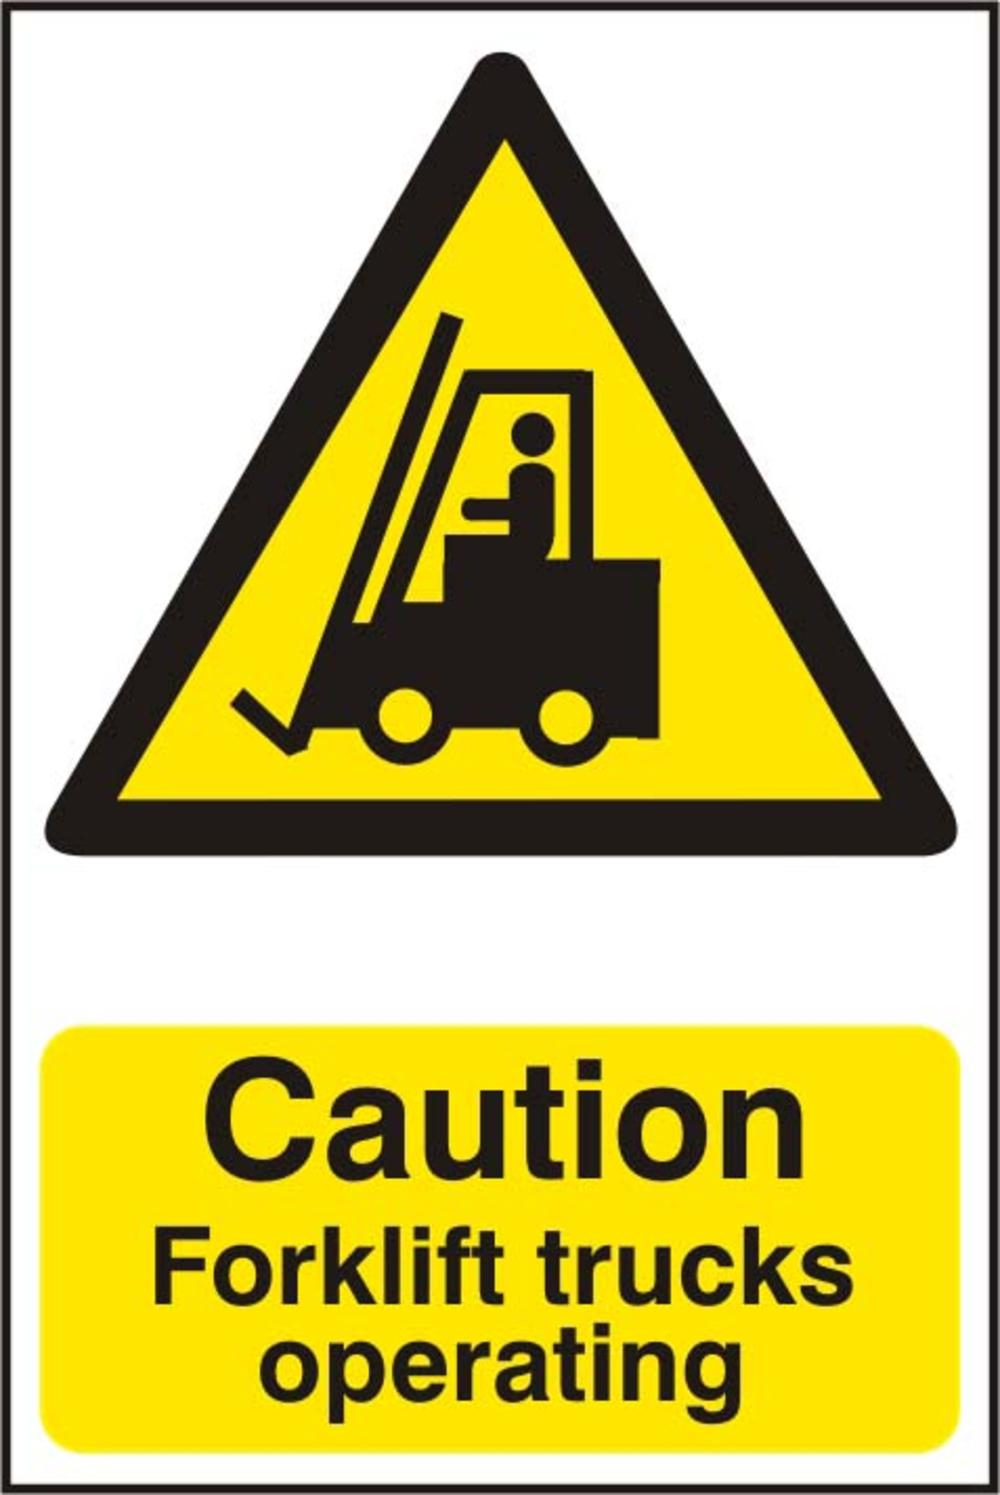 Caution Forklift Trucks Operating Polycarbonate 200 X